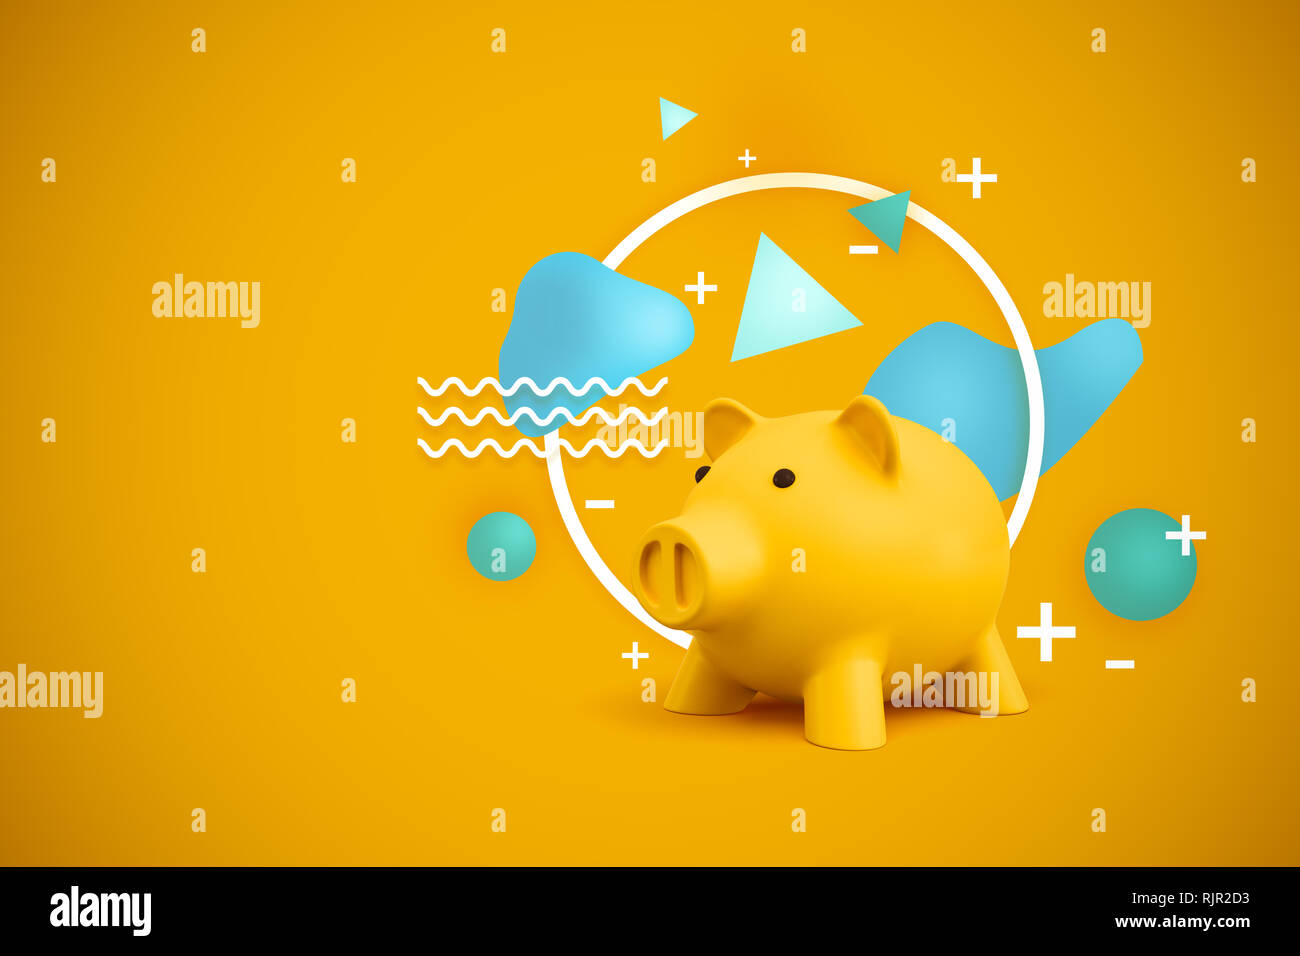 1f8835eaec8 3d rendering of a yellow piggy bank with miscellaneous shapes behind it on  a yellow background. Money and finance. Accumulating facts and ideas. Gaini